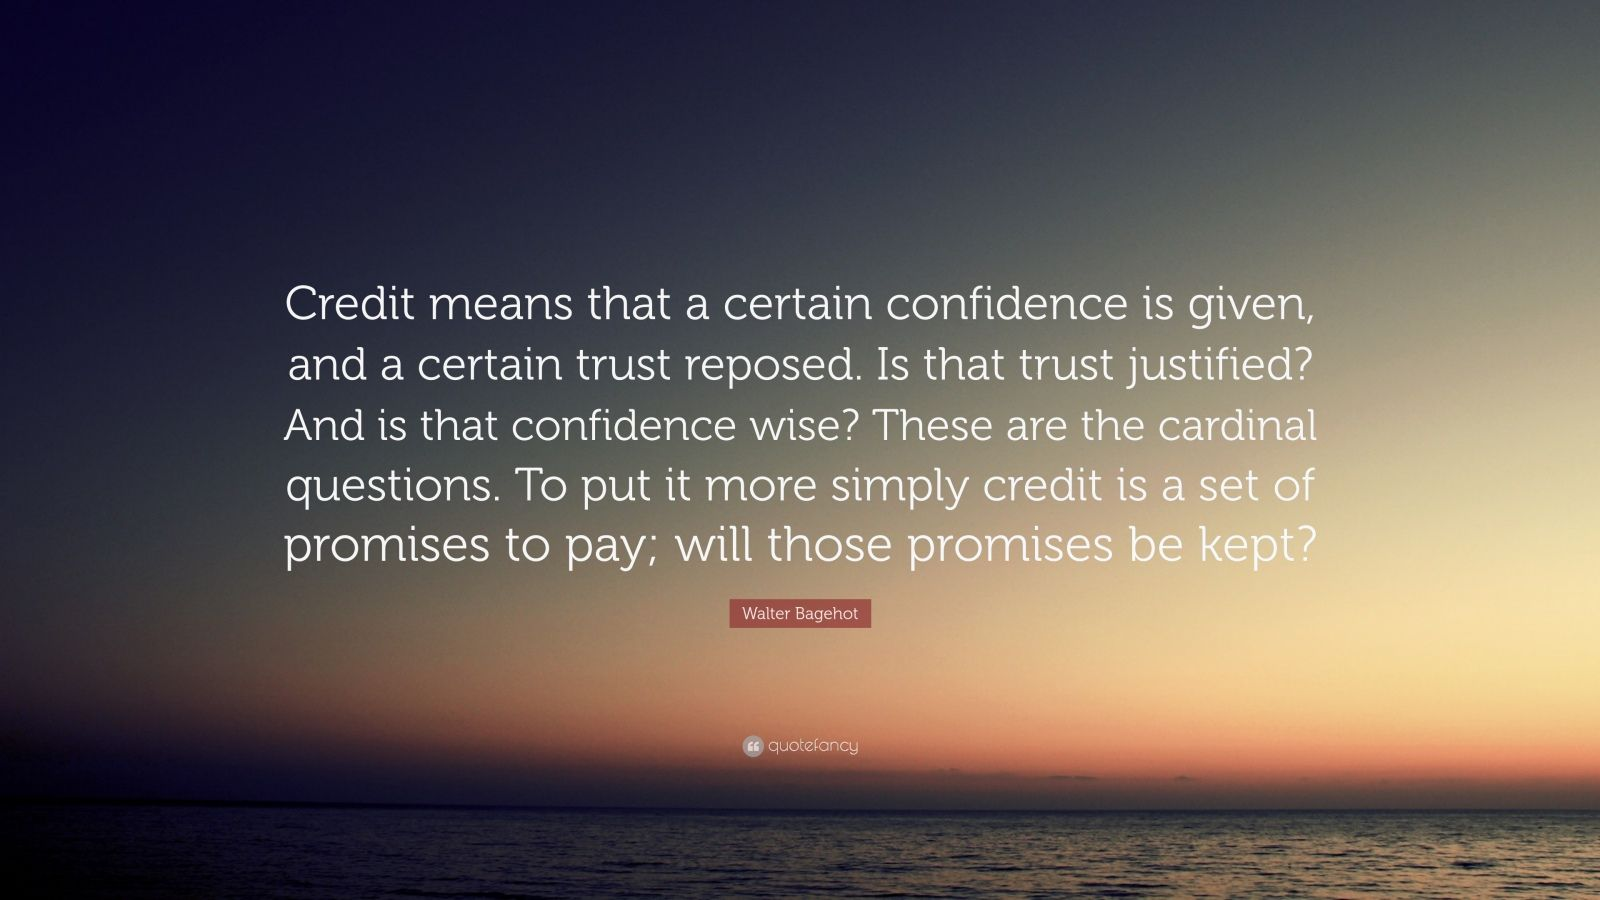 "Walter Bagehot Quote: ""Credit means that a certain confidence is given, and a certain trust reposed. Is that trust justified? And is that confidence wise? These are the cardinal questions. To put it more simply credit is a set of promises to pay; will those promises be kept?"""